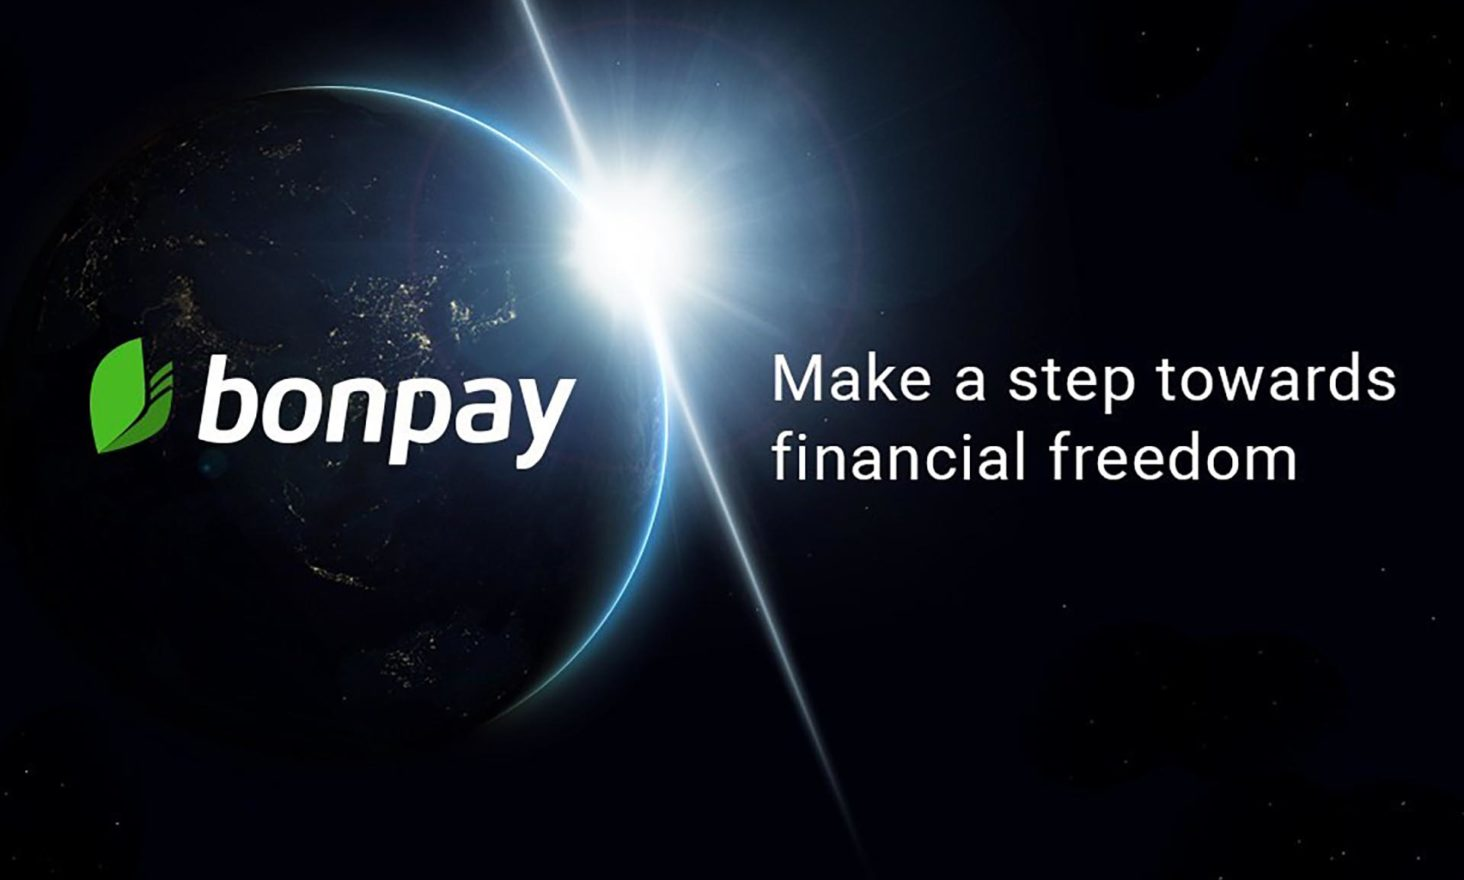 Cryptocurrency Payments Solution Bonpay Step-Up to the Plate, Confirm Details of Their ICO